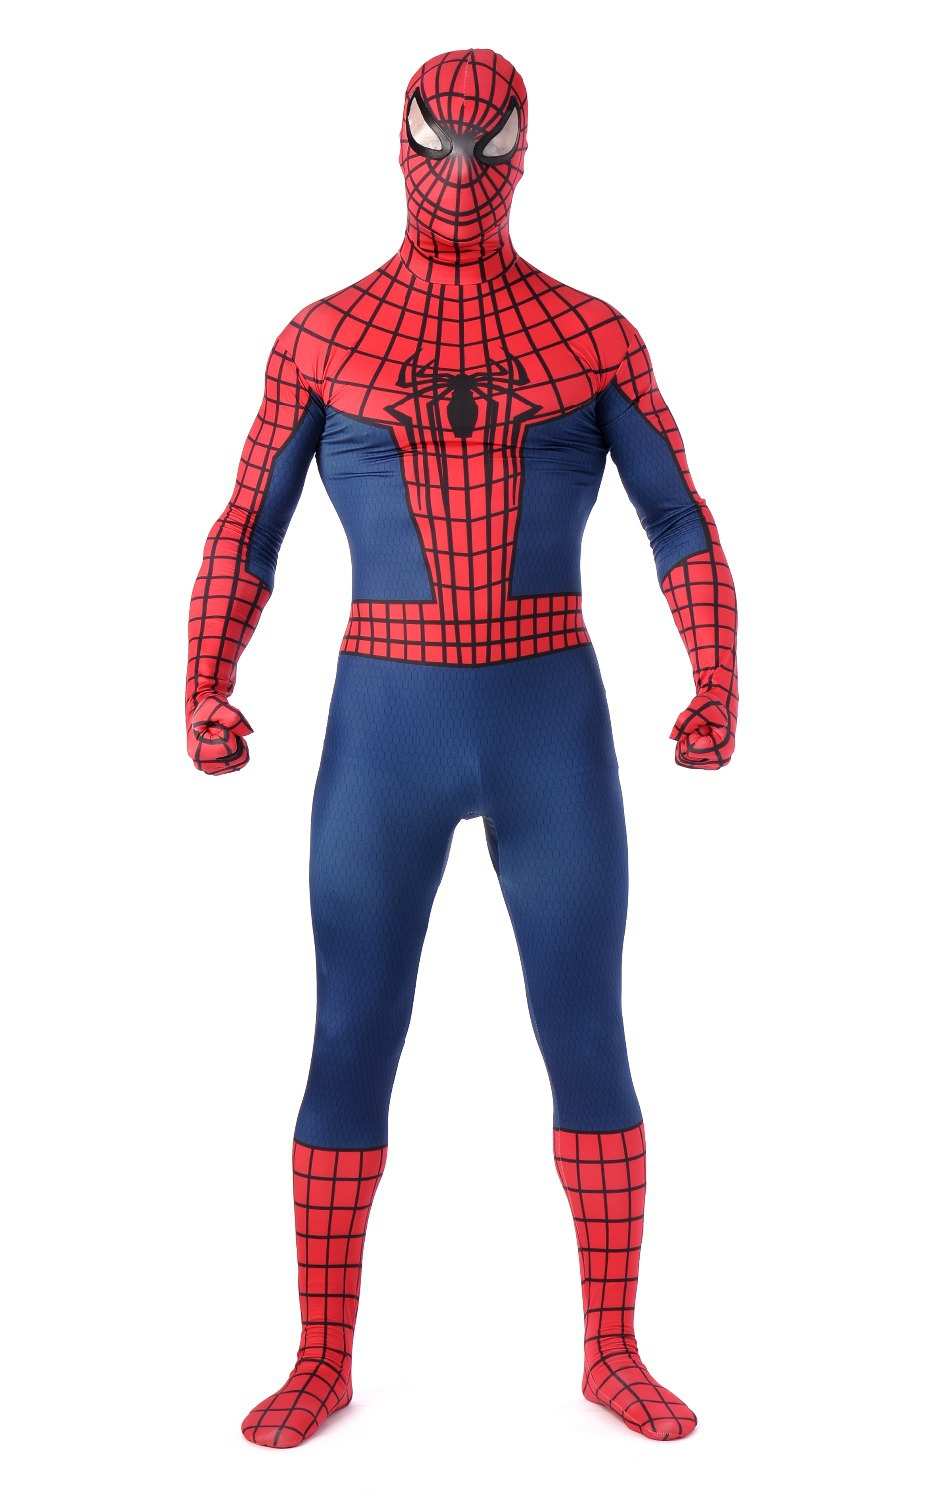 Amazing Spiderman Woman Costume Adult Mens Superhero Outfit Spandex Zentai Suits Lycra Full Mask Bodysuits For Halloween Cosplay